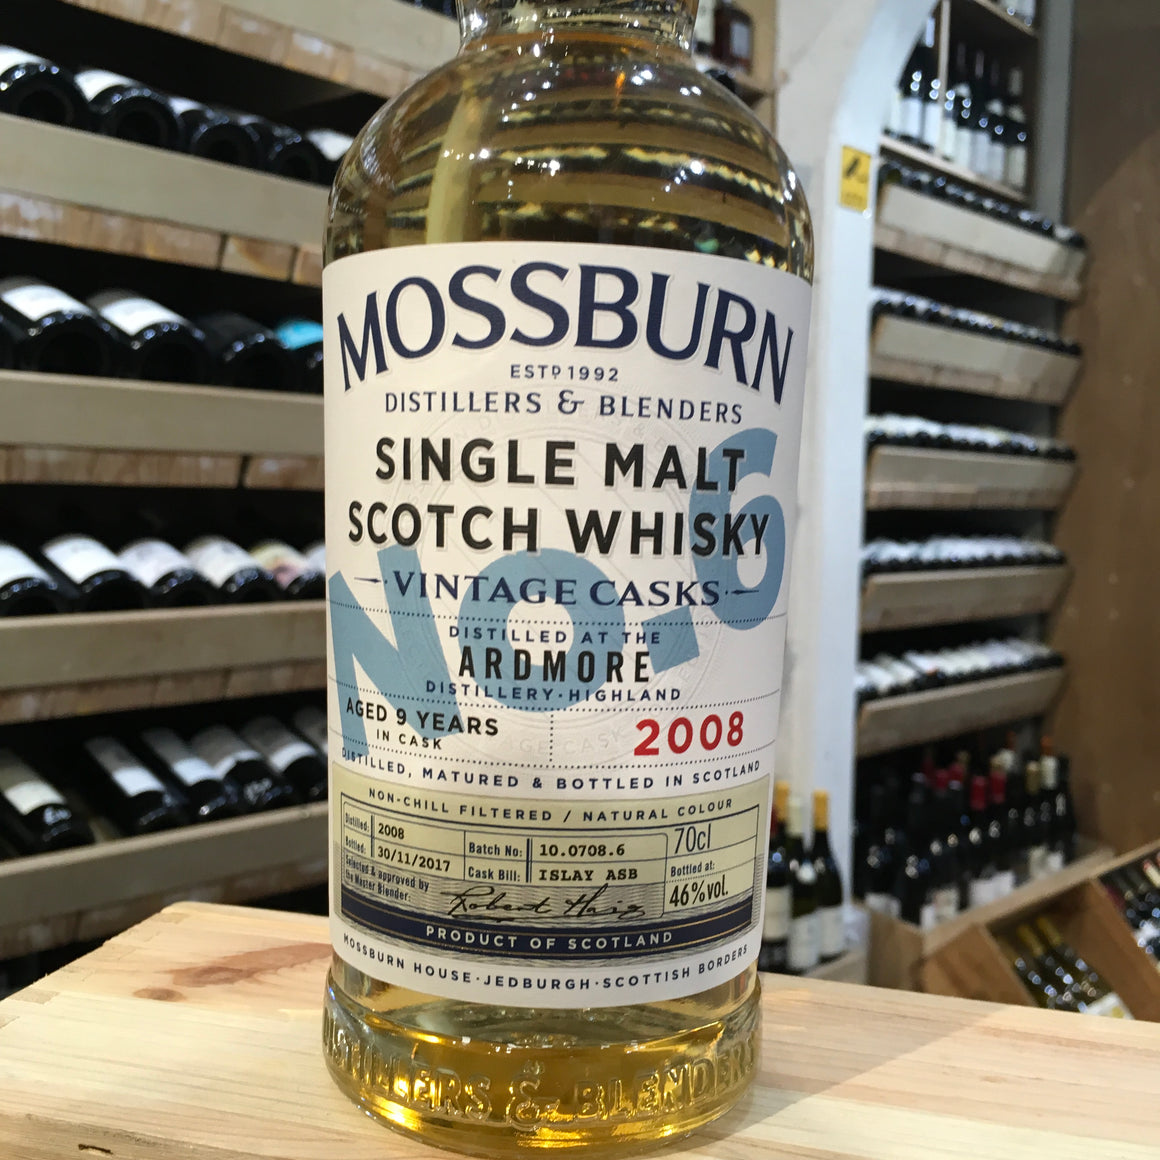 Mossburn No 6 Ardmore 9yr old Highland Whisky 48% Abv - Butlers Wine Cellar Brighton